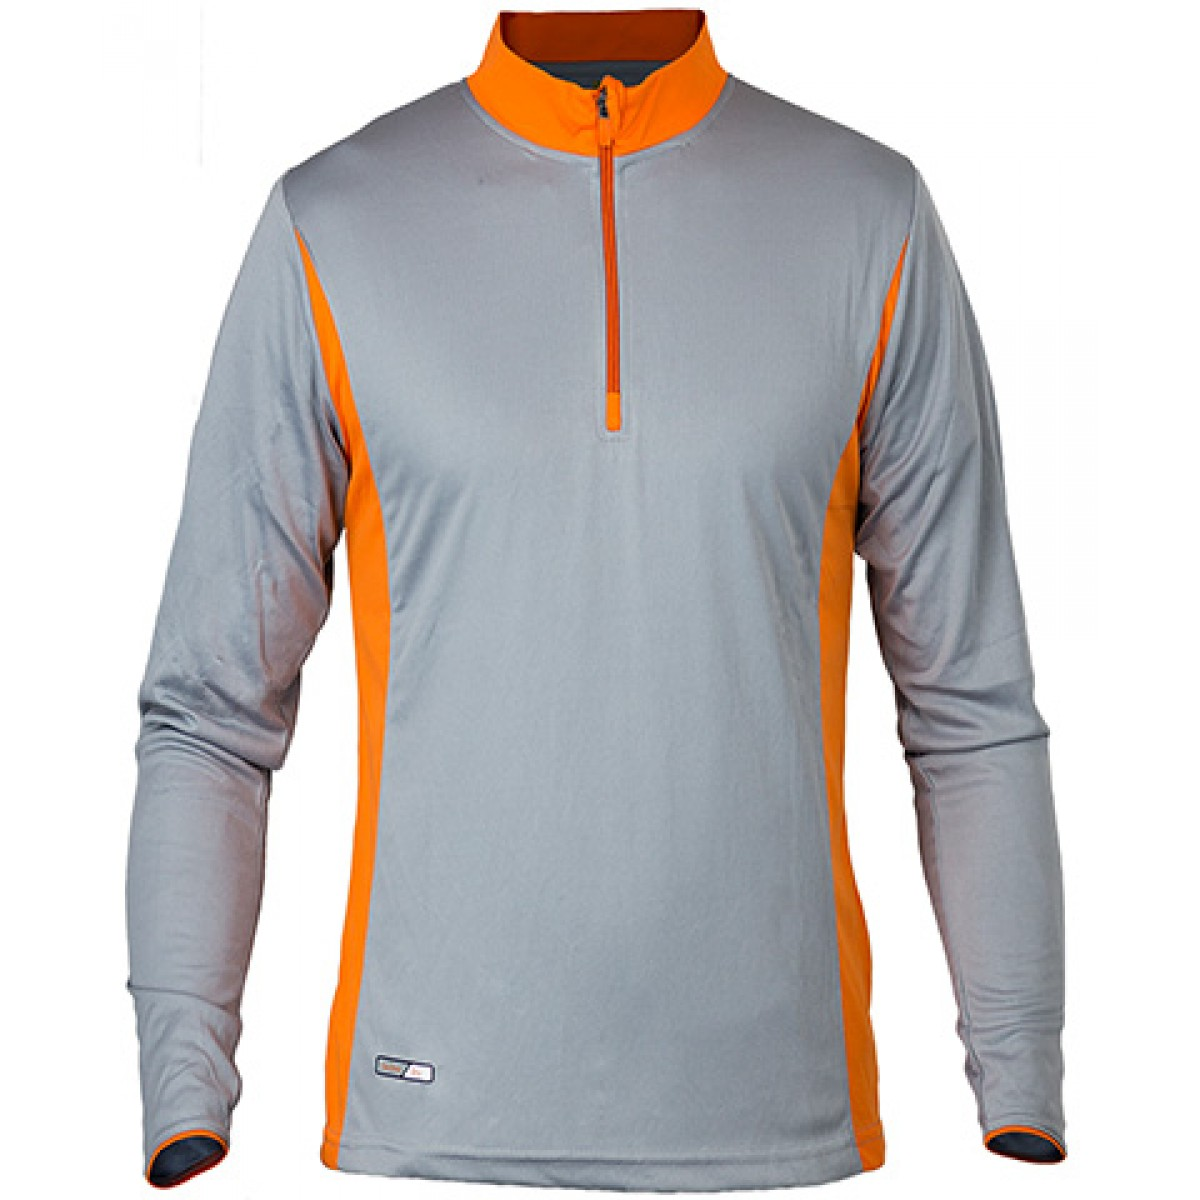 Long Sleeves 3/4 Zip Performance With Side Insert-Neon Orange -XL